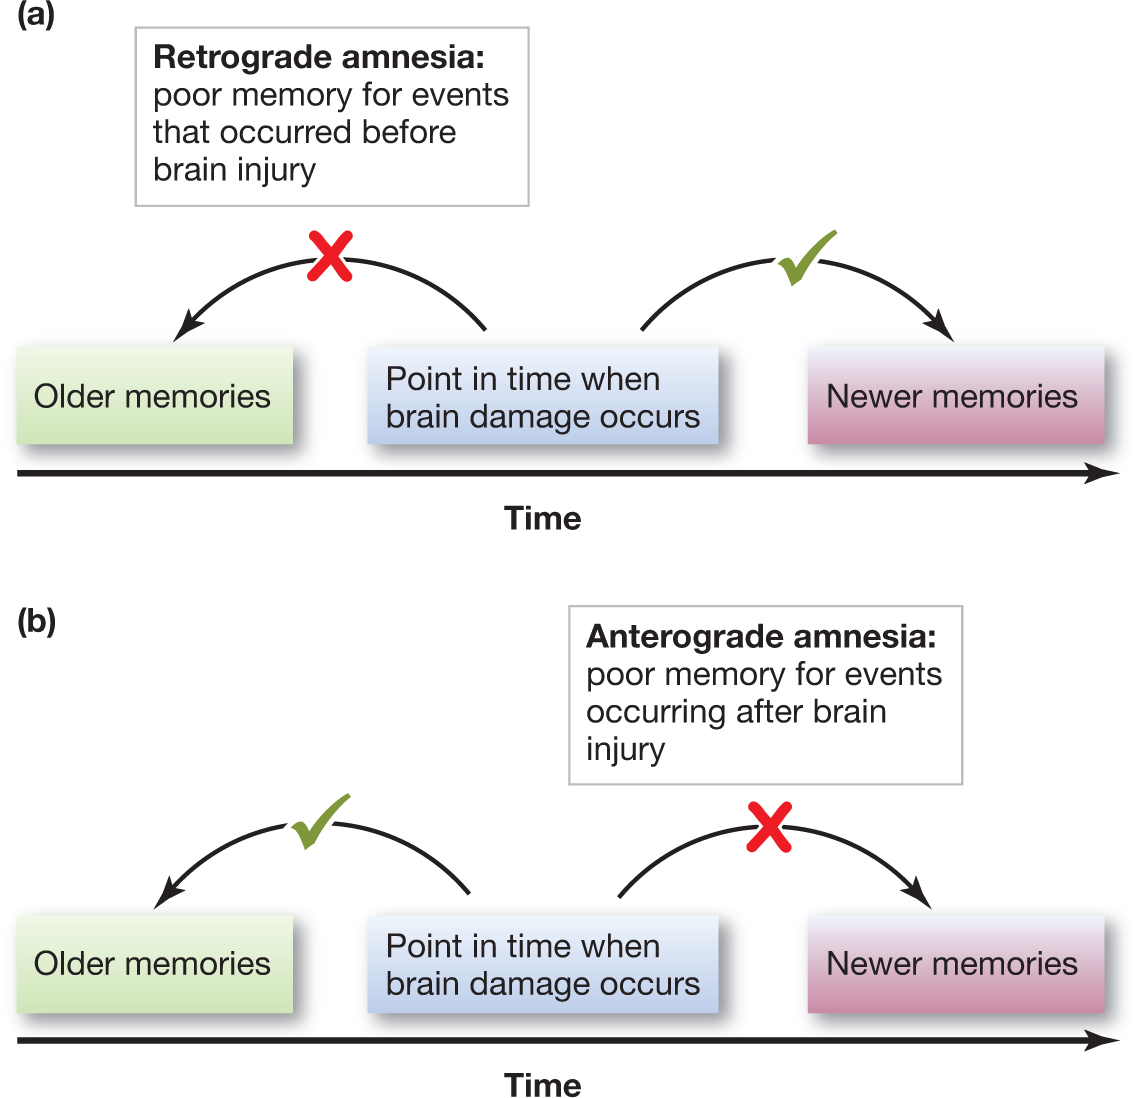 amnesia memory loss Can anesthesia cause memory loss ensuring no recall for traumatic events during surgerysome people have short term amnesia/memory loss or other cognitive symptoms.